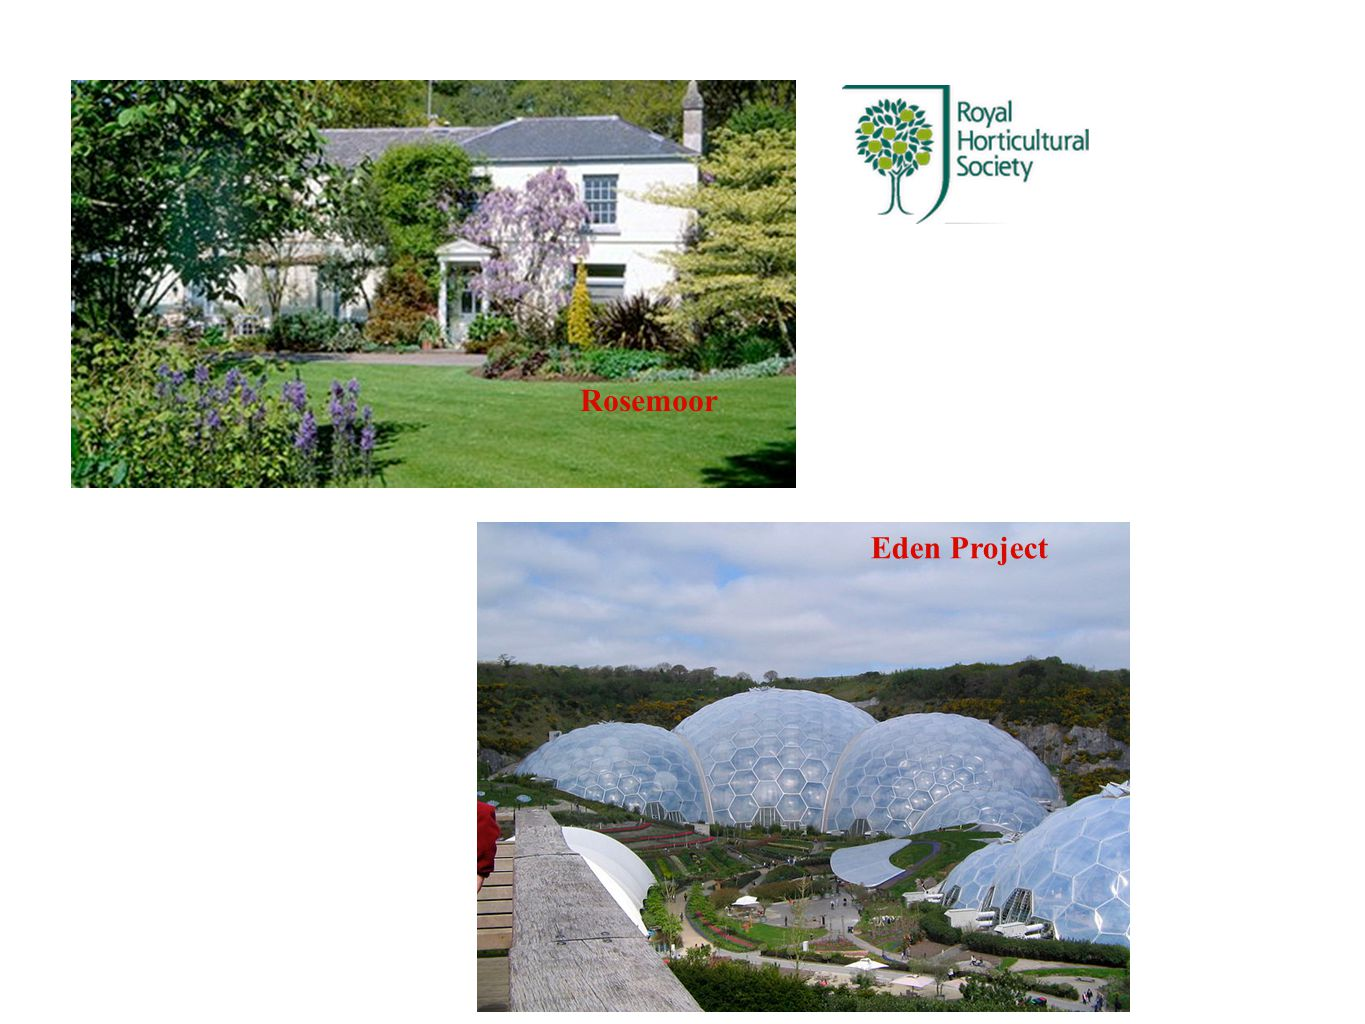 Rosemoor Eden Project